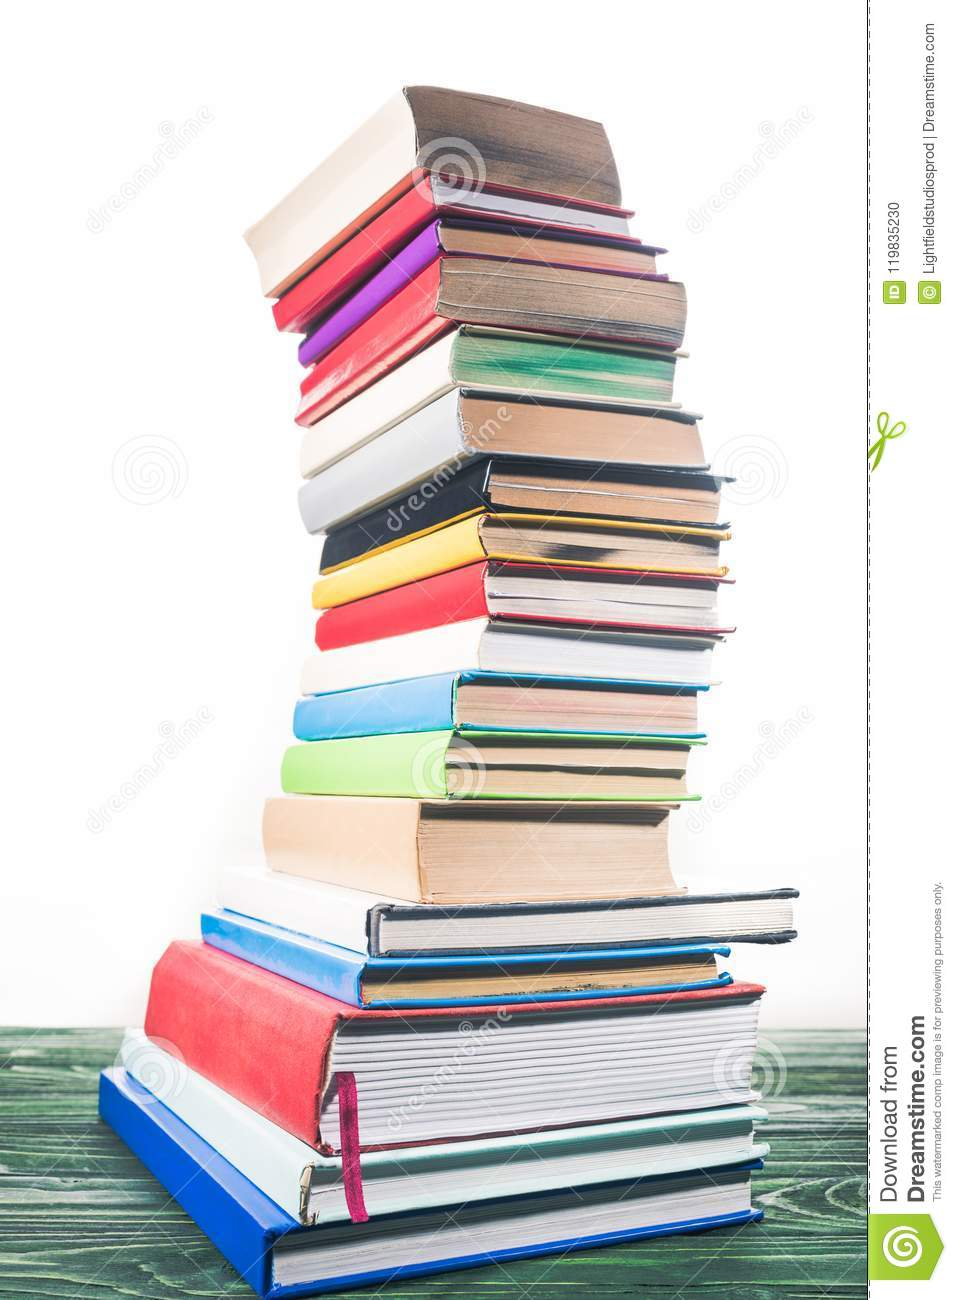 Bent tower of stacked books on white background